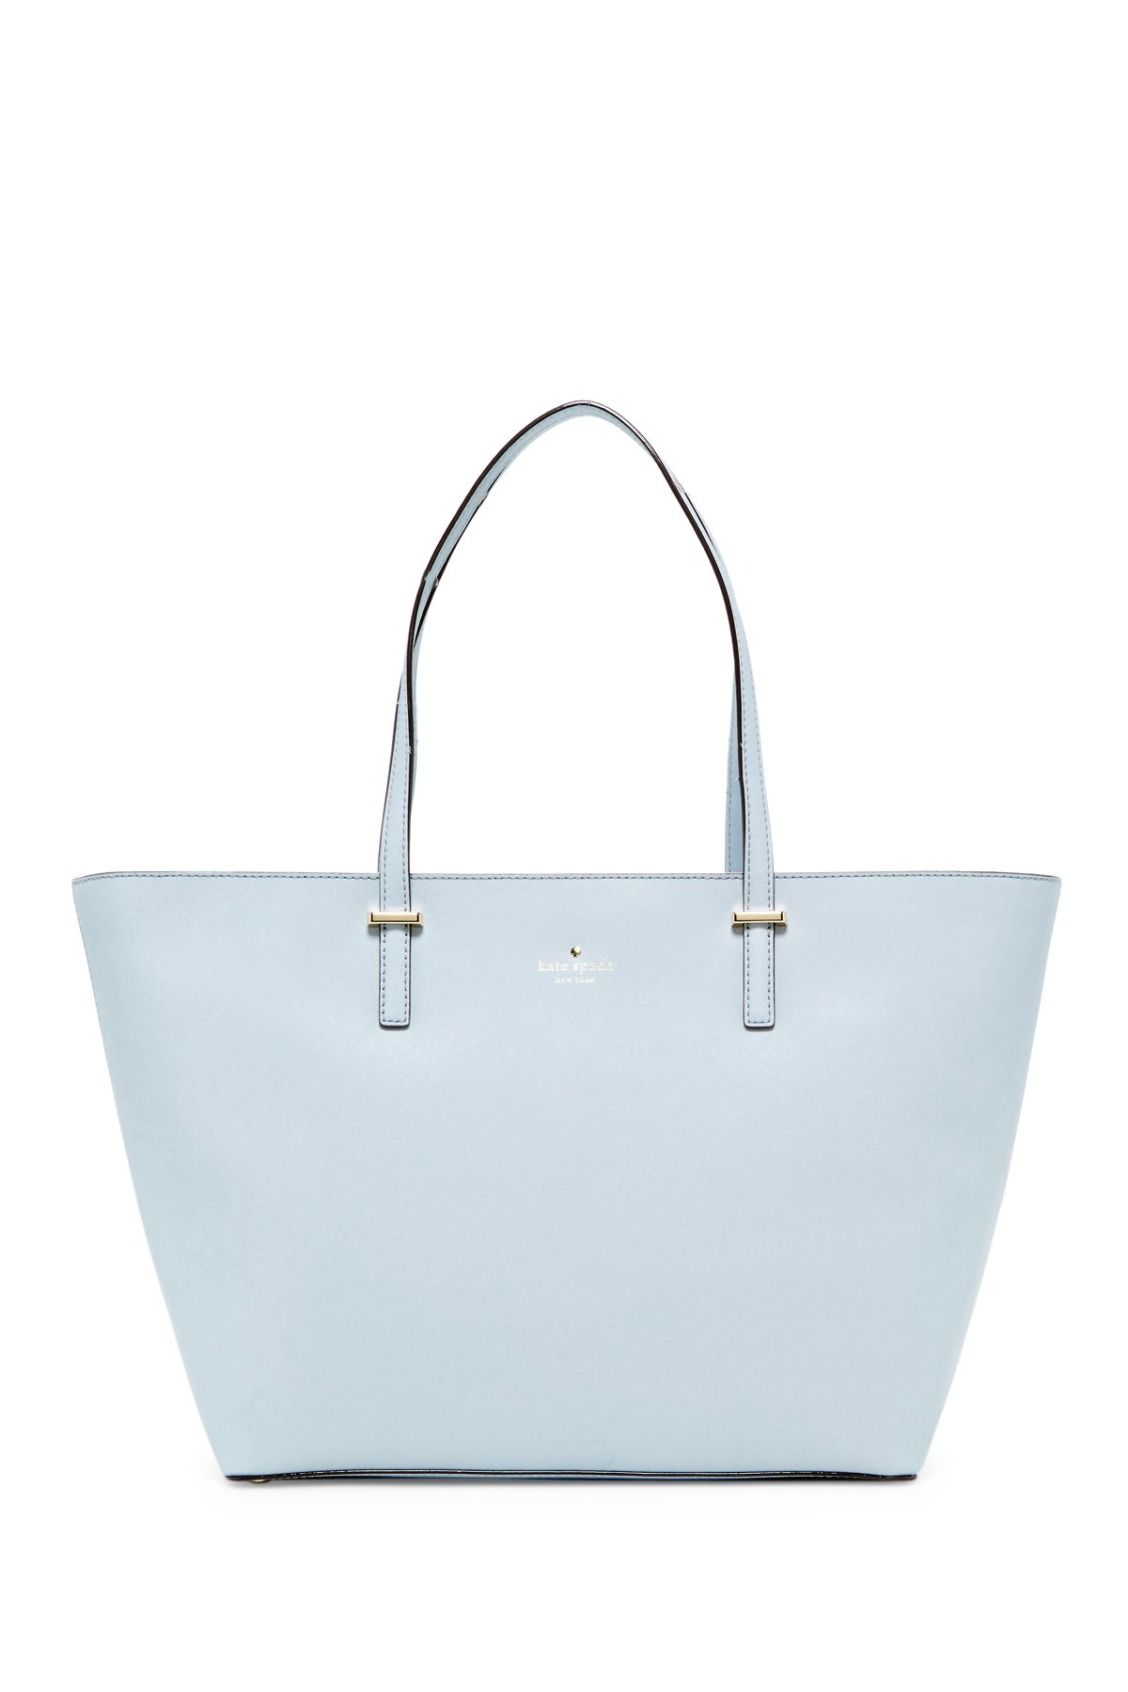 c3c709d0be Baby blue! kate spade new york Cedar Street Medium Harmony Leather Tote